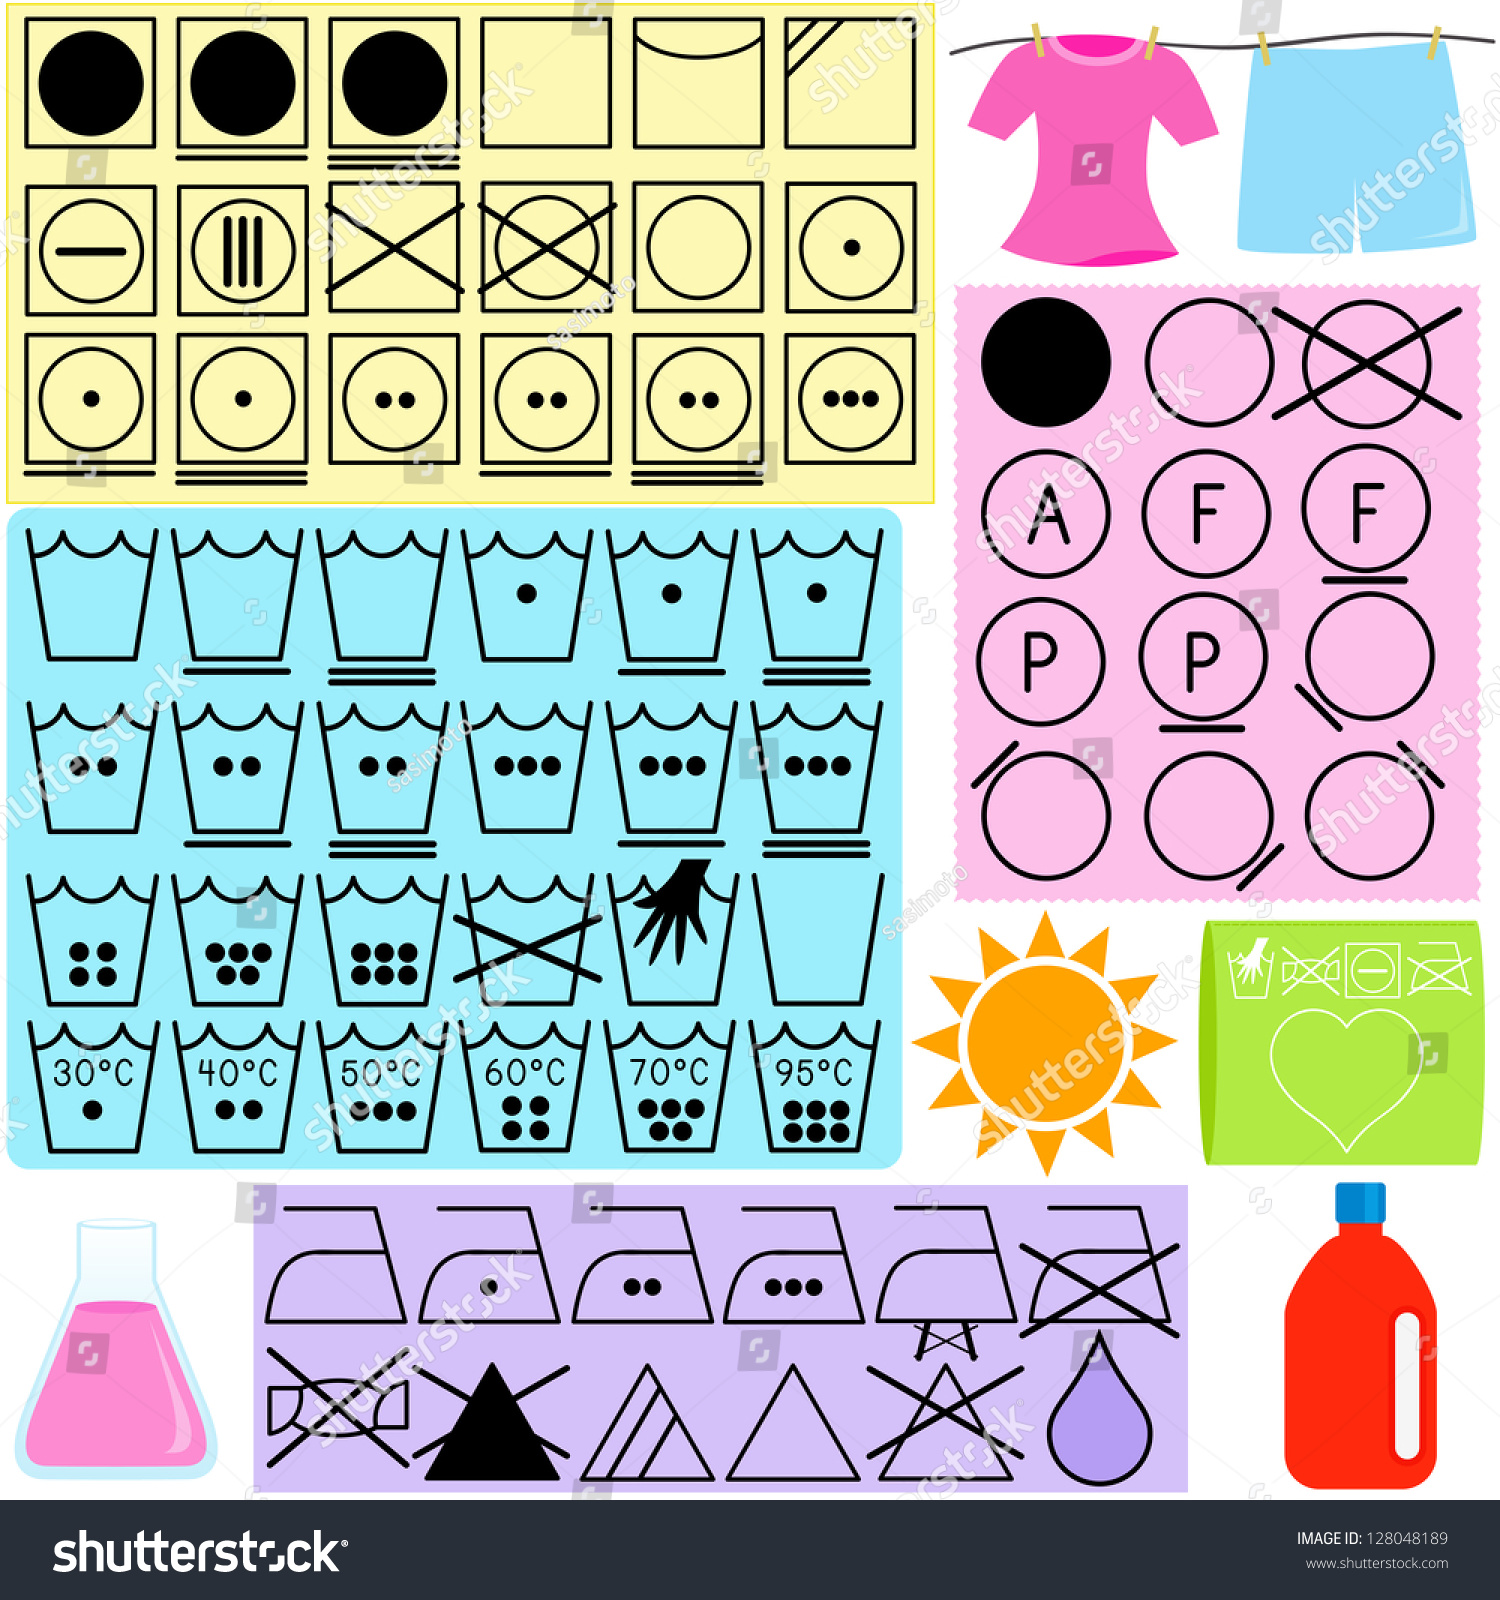 Silhouettes Vector Laundry Symbols Clothes Washing Stock Vector